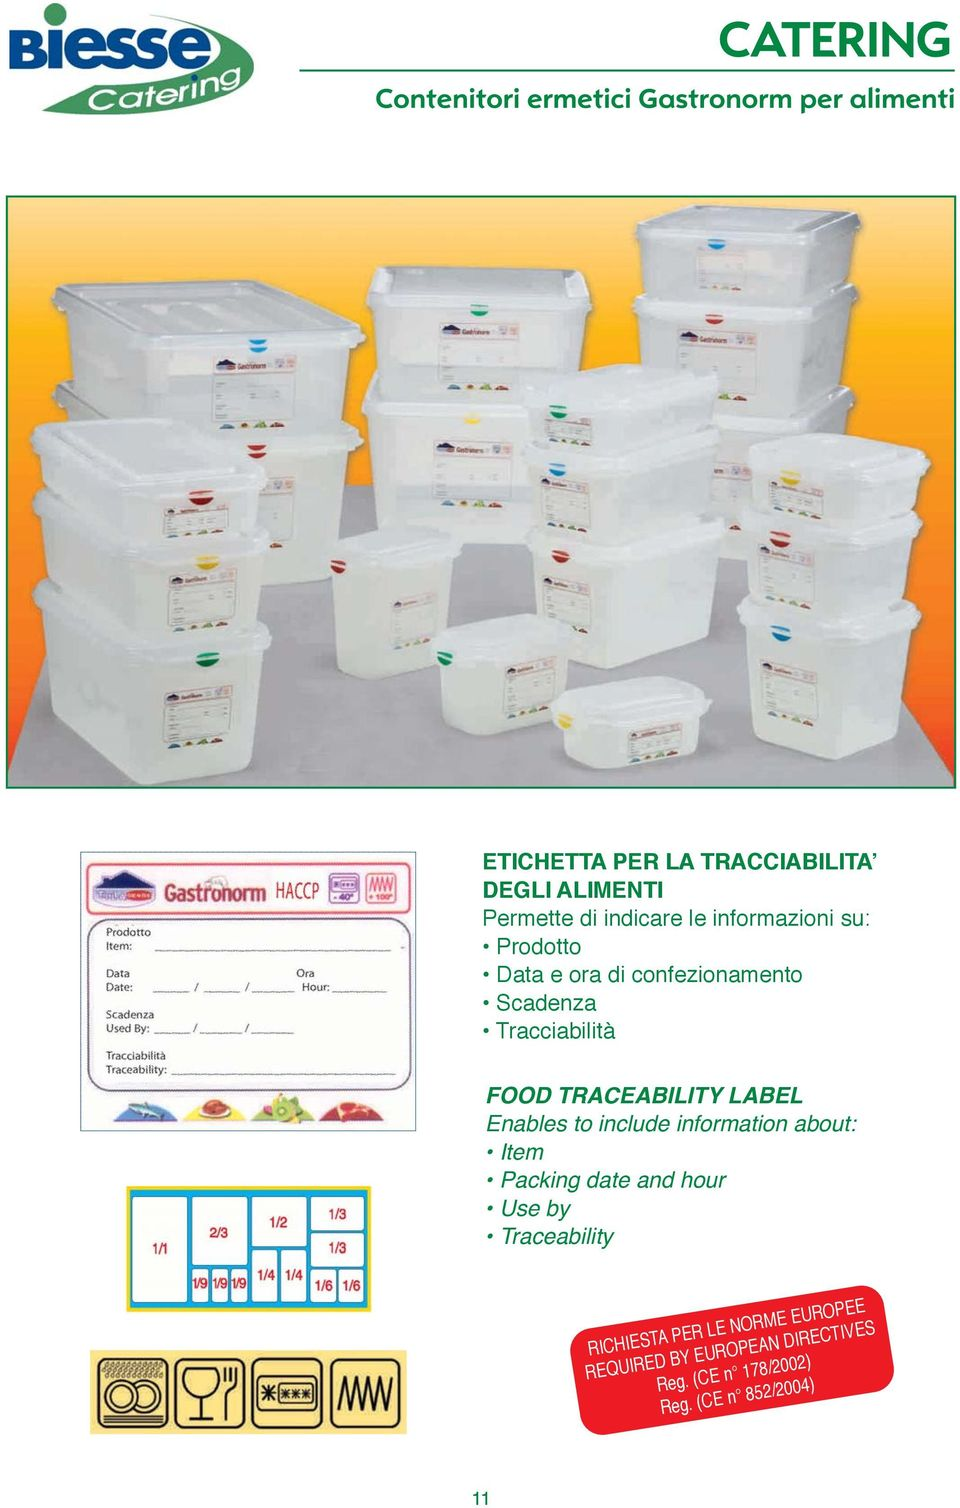 Enables to include information about: Item Packing date and hour Use by Traceability